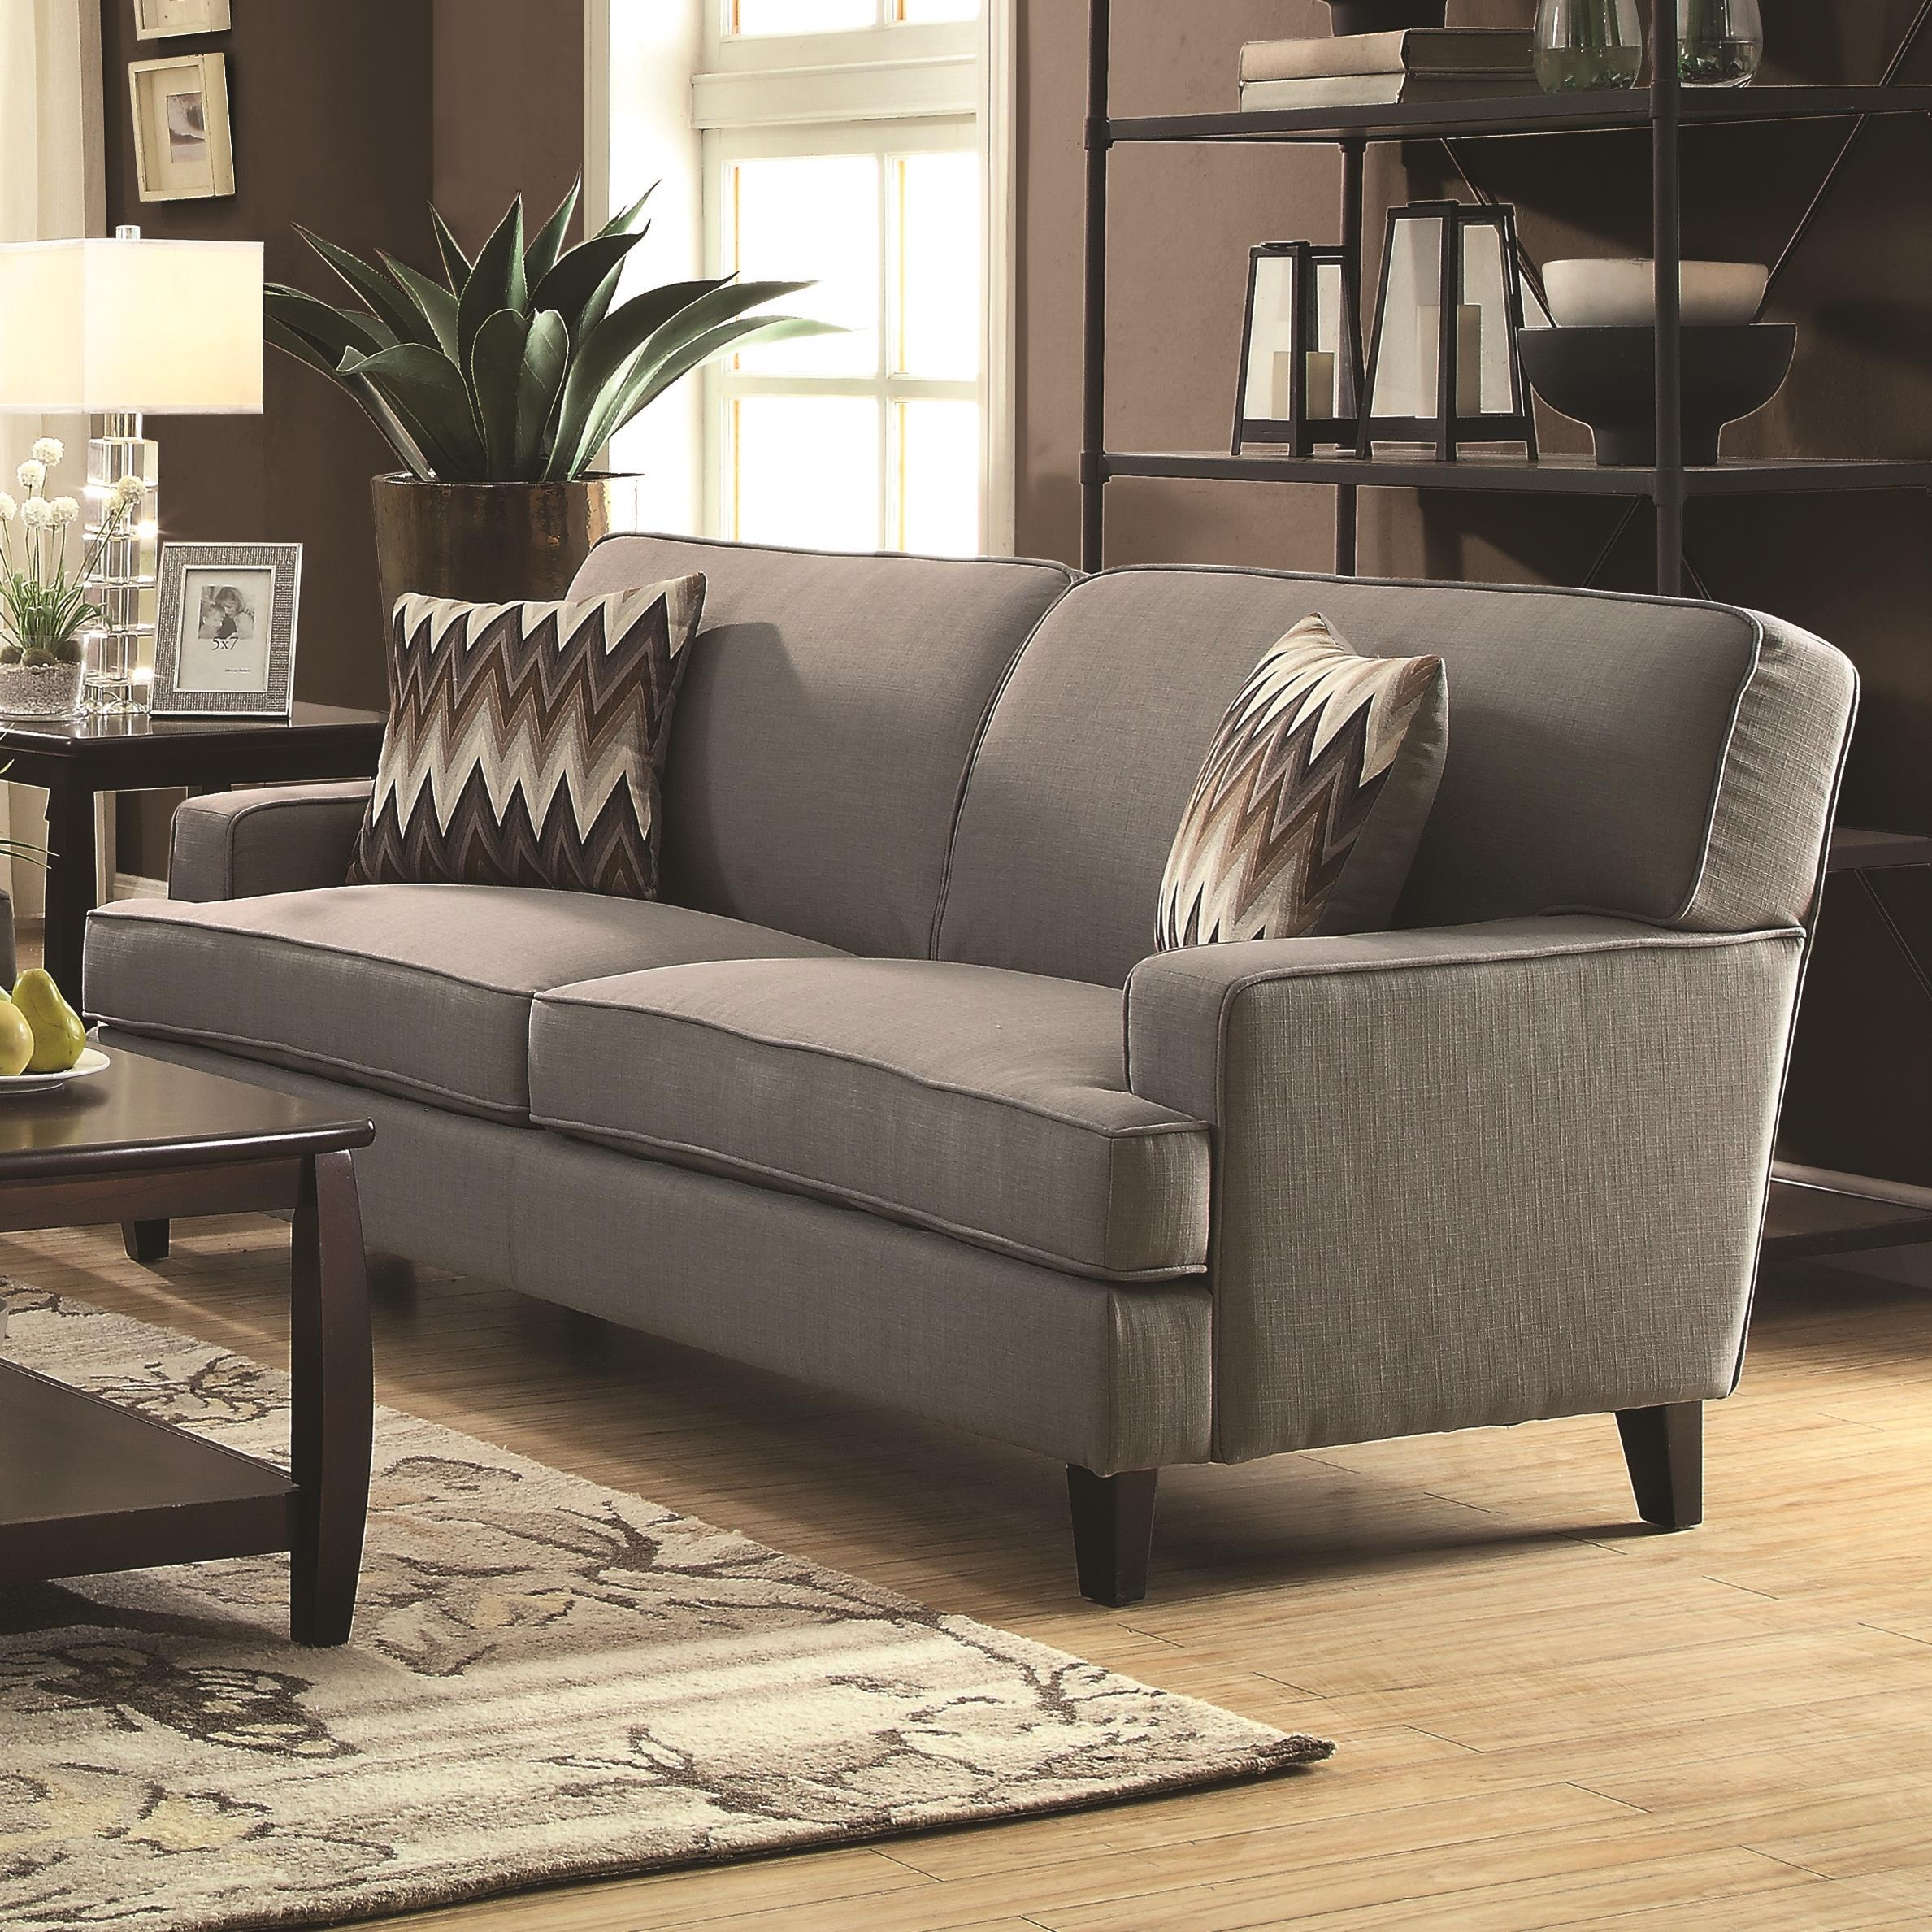 6 Foot Sofa 37 With 6 Foot Sofa | Jinanhongyu within 6 Foot Sofas